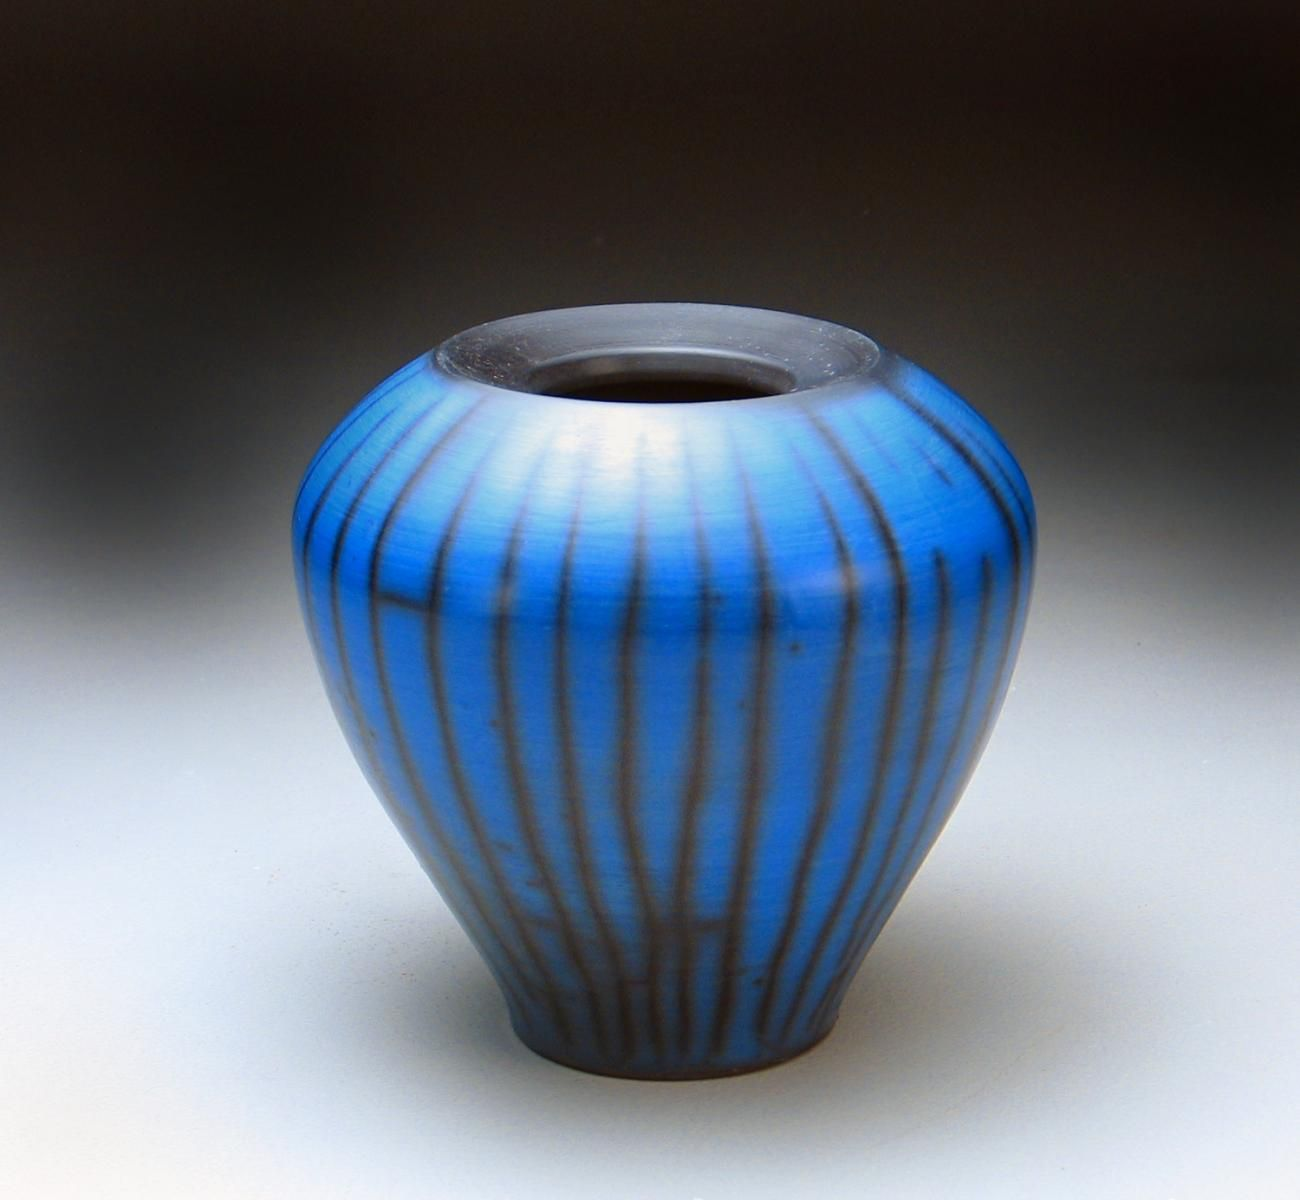 Gordon Hutchens Pottery Raku Fired Ceramics Ceramics